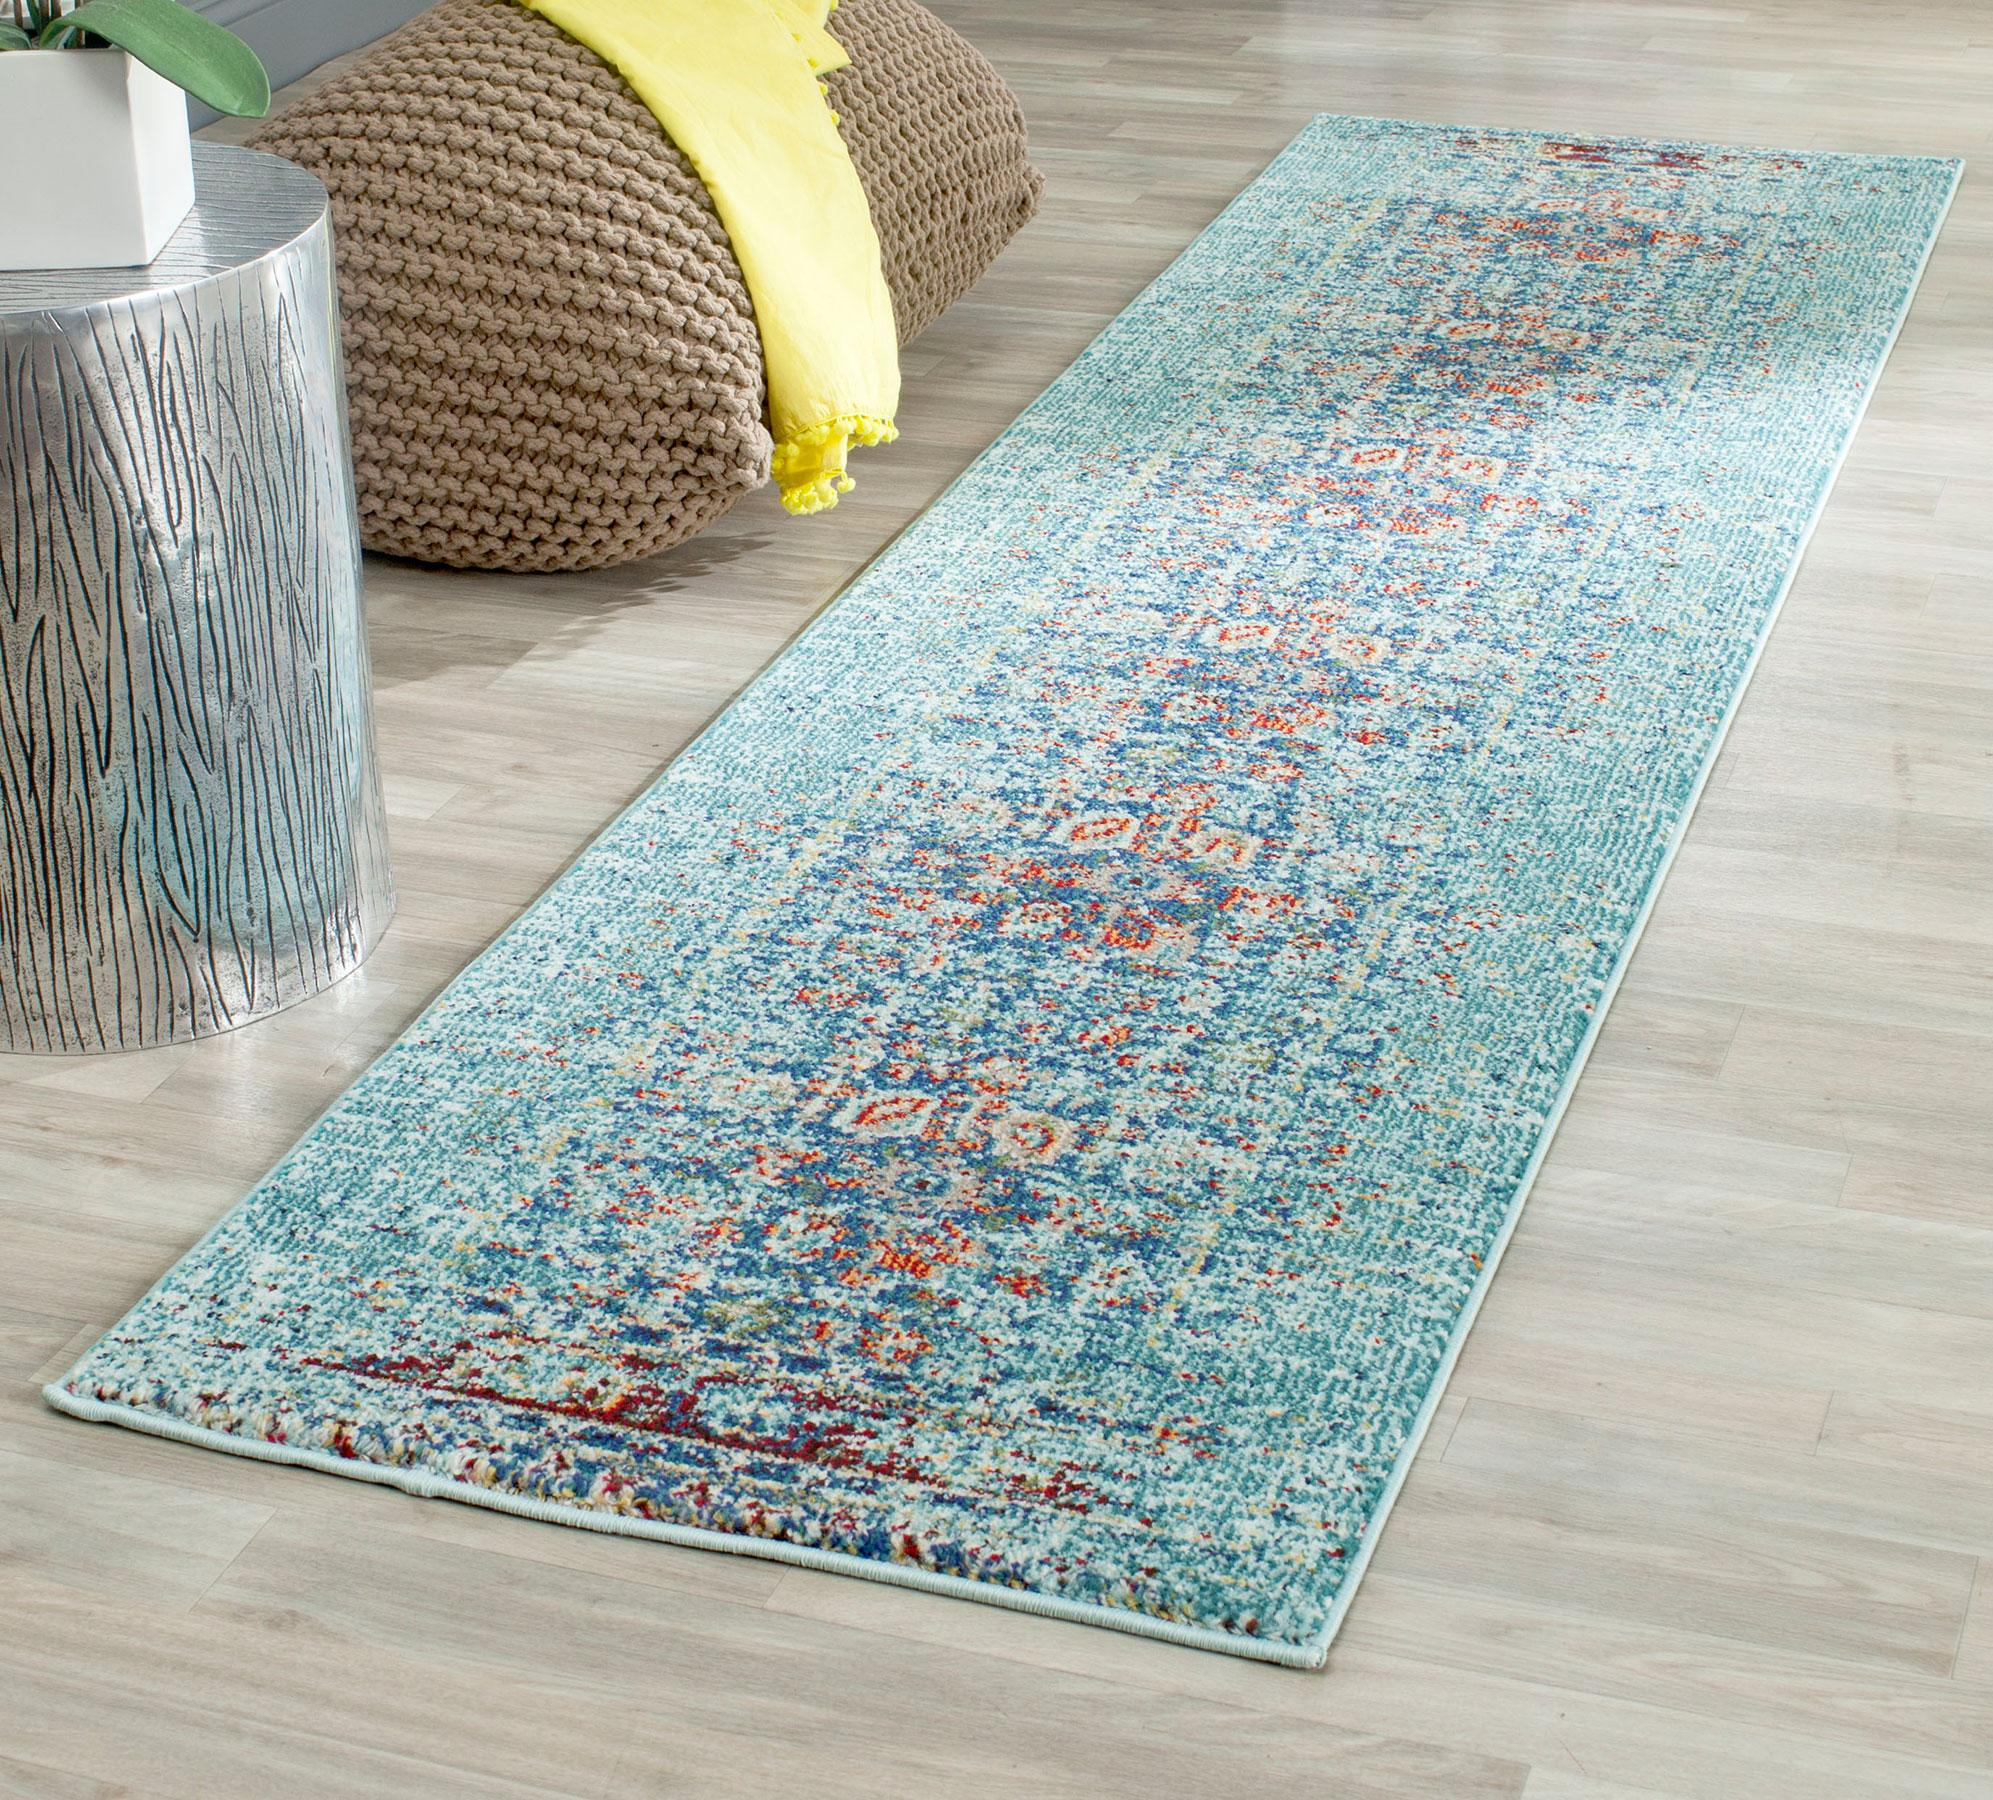 100 2 X 12 Runner Rugs 48 Best Round Images On Pintere